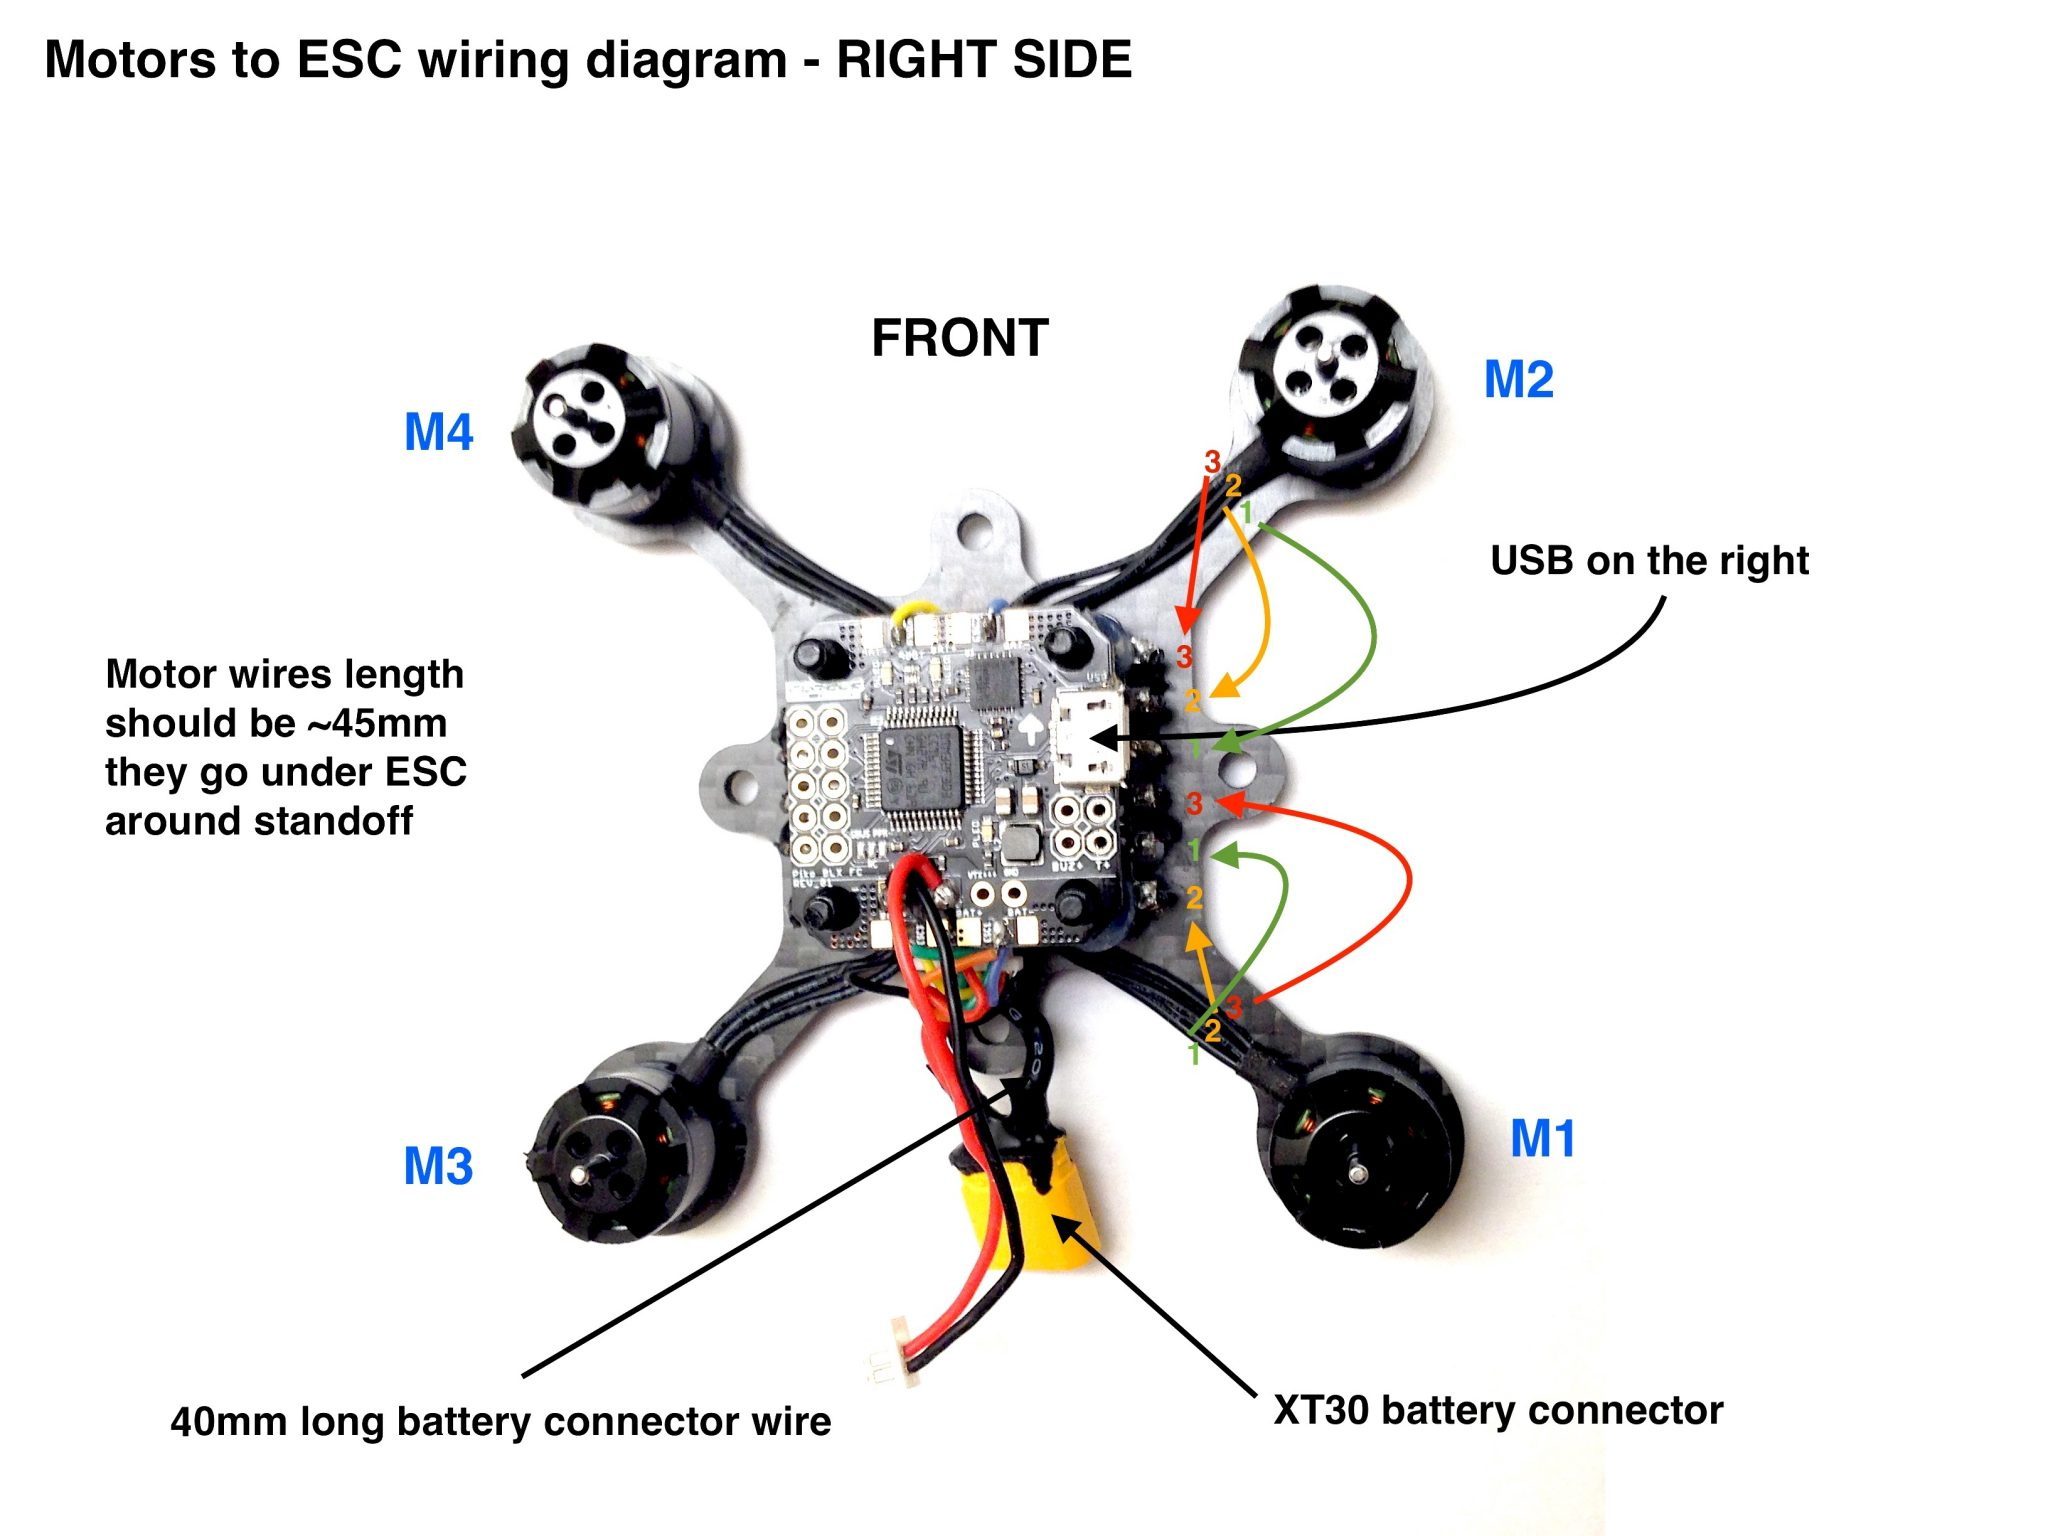 Flexrc Pico Core Motors Wiring Diagram Flex Rc. Wiring. Drone Esc Wiring Diagram At Scoala.co